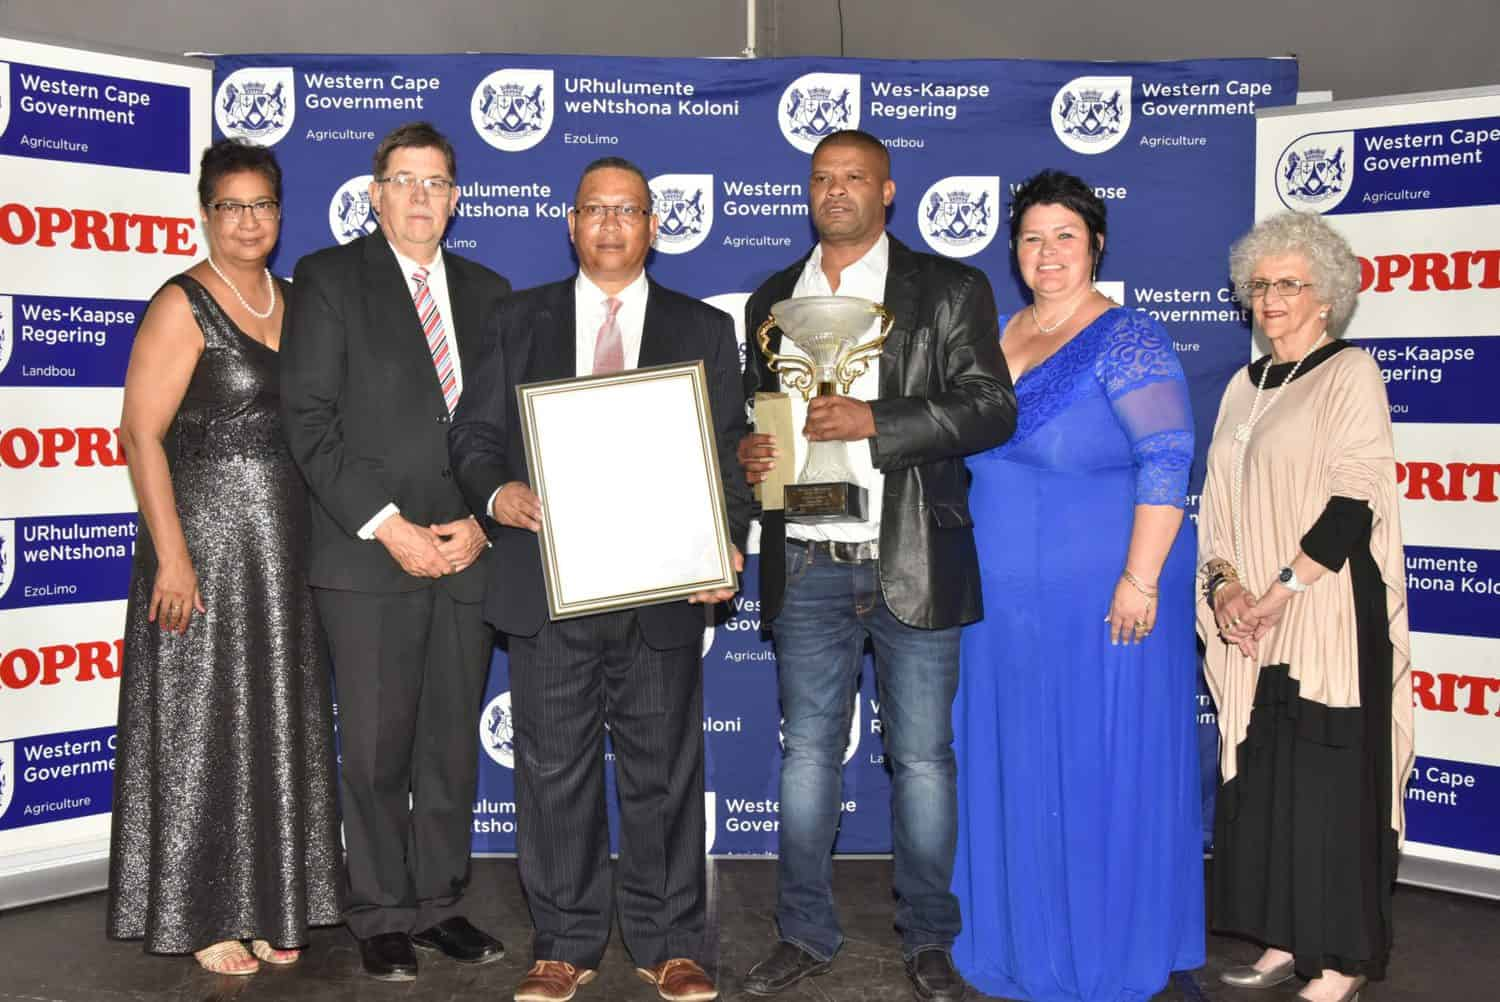 (From left to right) Joyene Isaacs, Western Cape Department of Agriculture; Dr van Deventer, Shoprite; Minister Ivan Meyer, Francois Cilliers, winner; Executive Mayor of the Breede Valley Municipality, Antoinette Steyn; and Elsa Jordaan, CEO, Hex Valley Table Grape Association